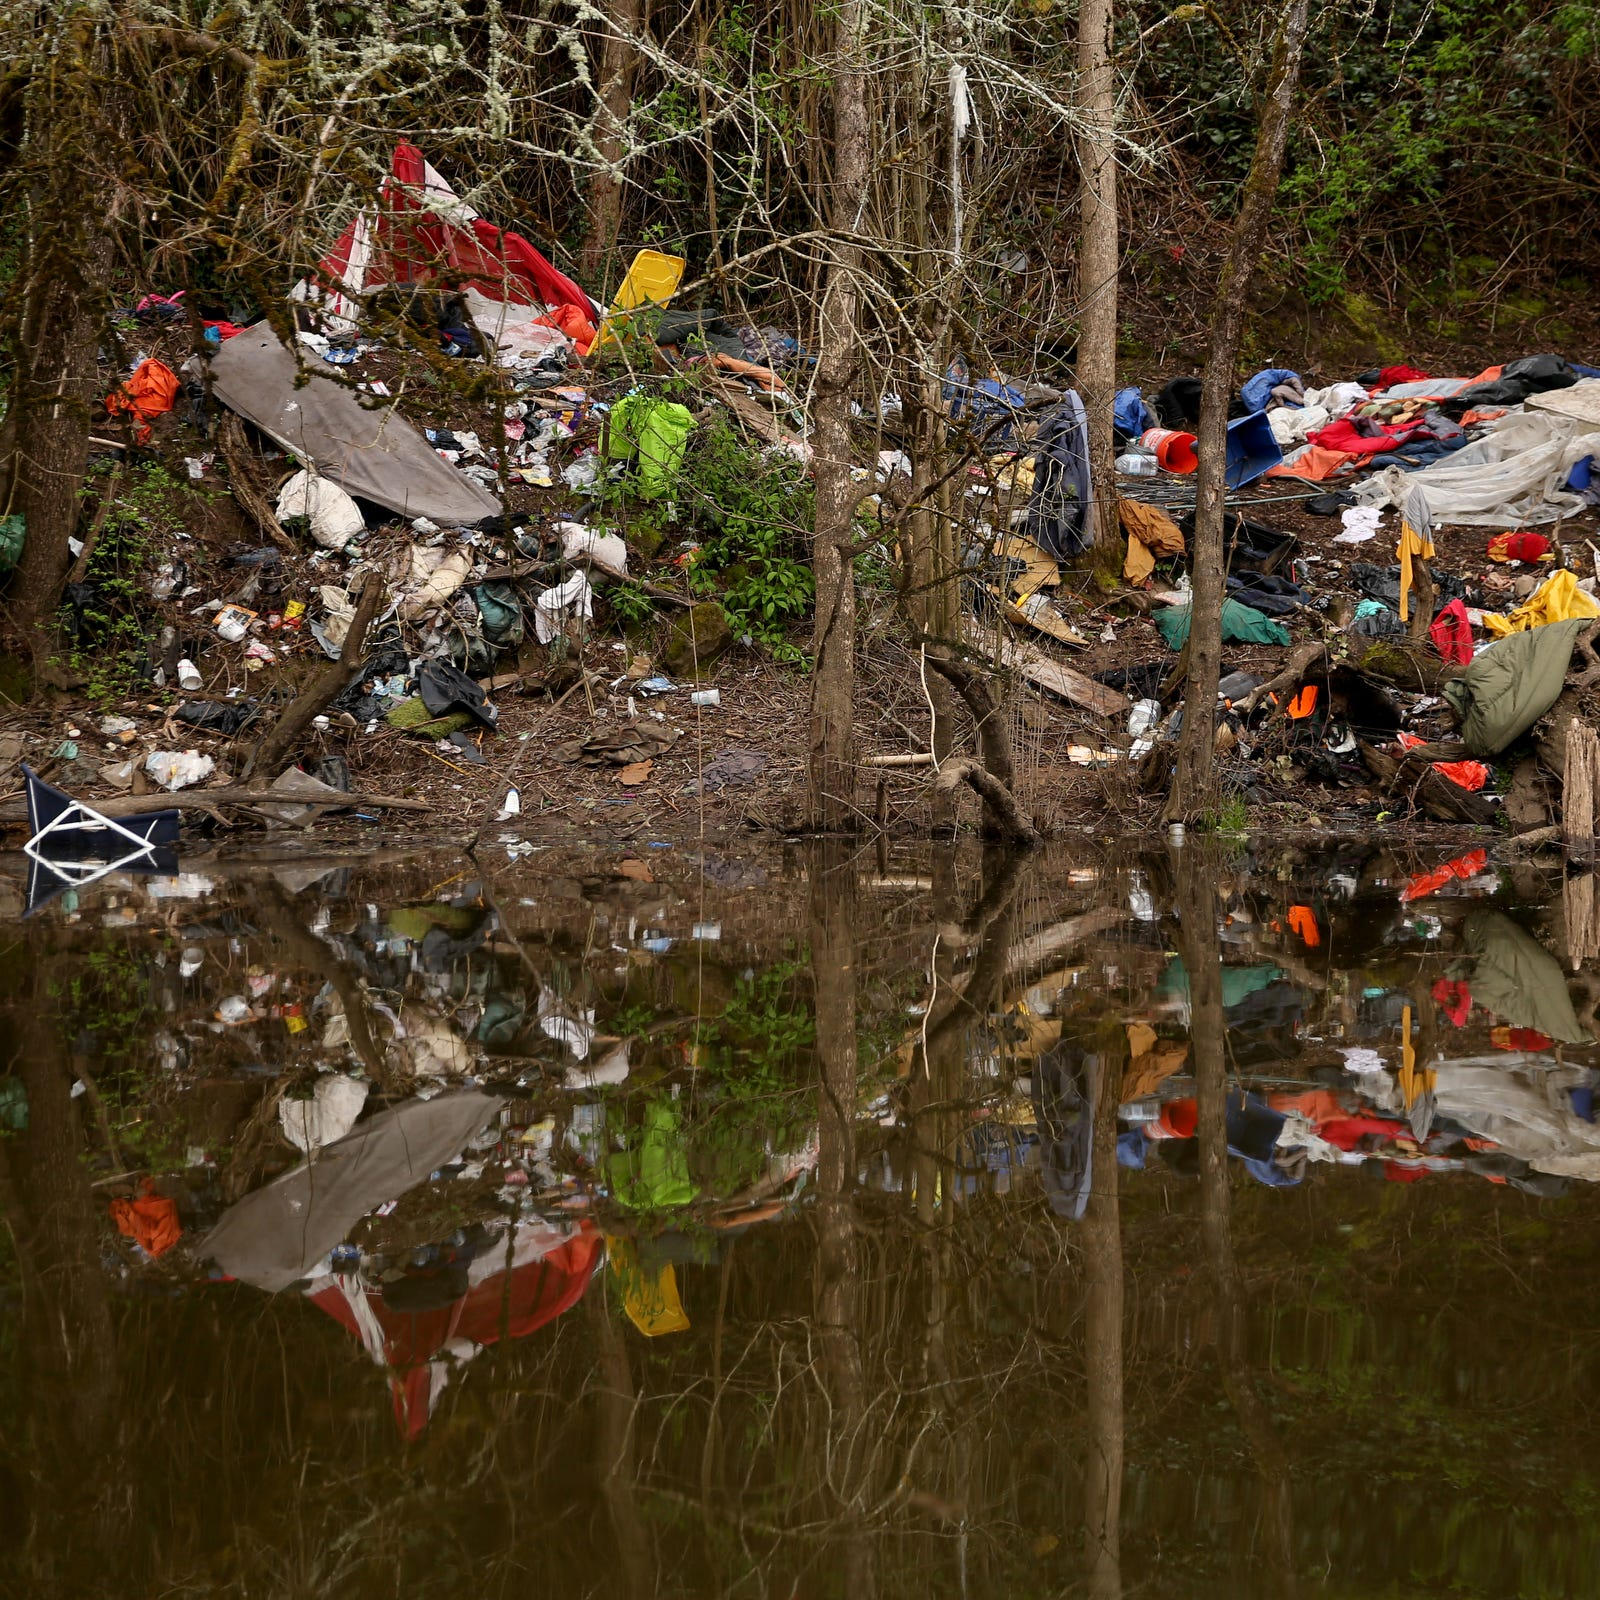 Piles of trash along Salem's Willamette Slough spur concerns; cleanup program starts in May